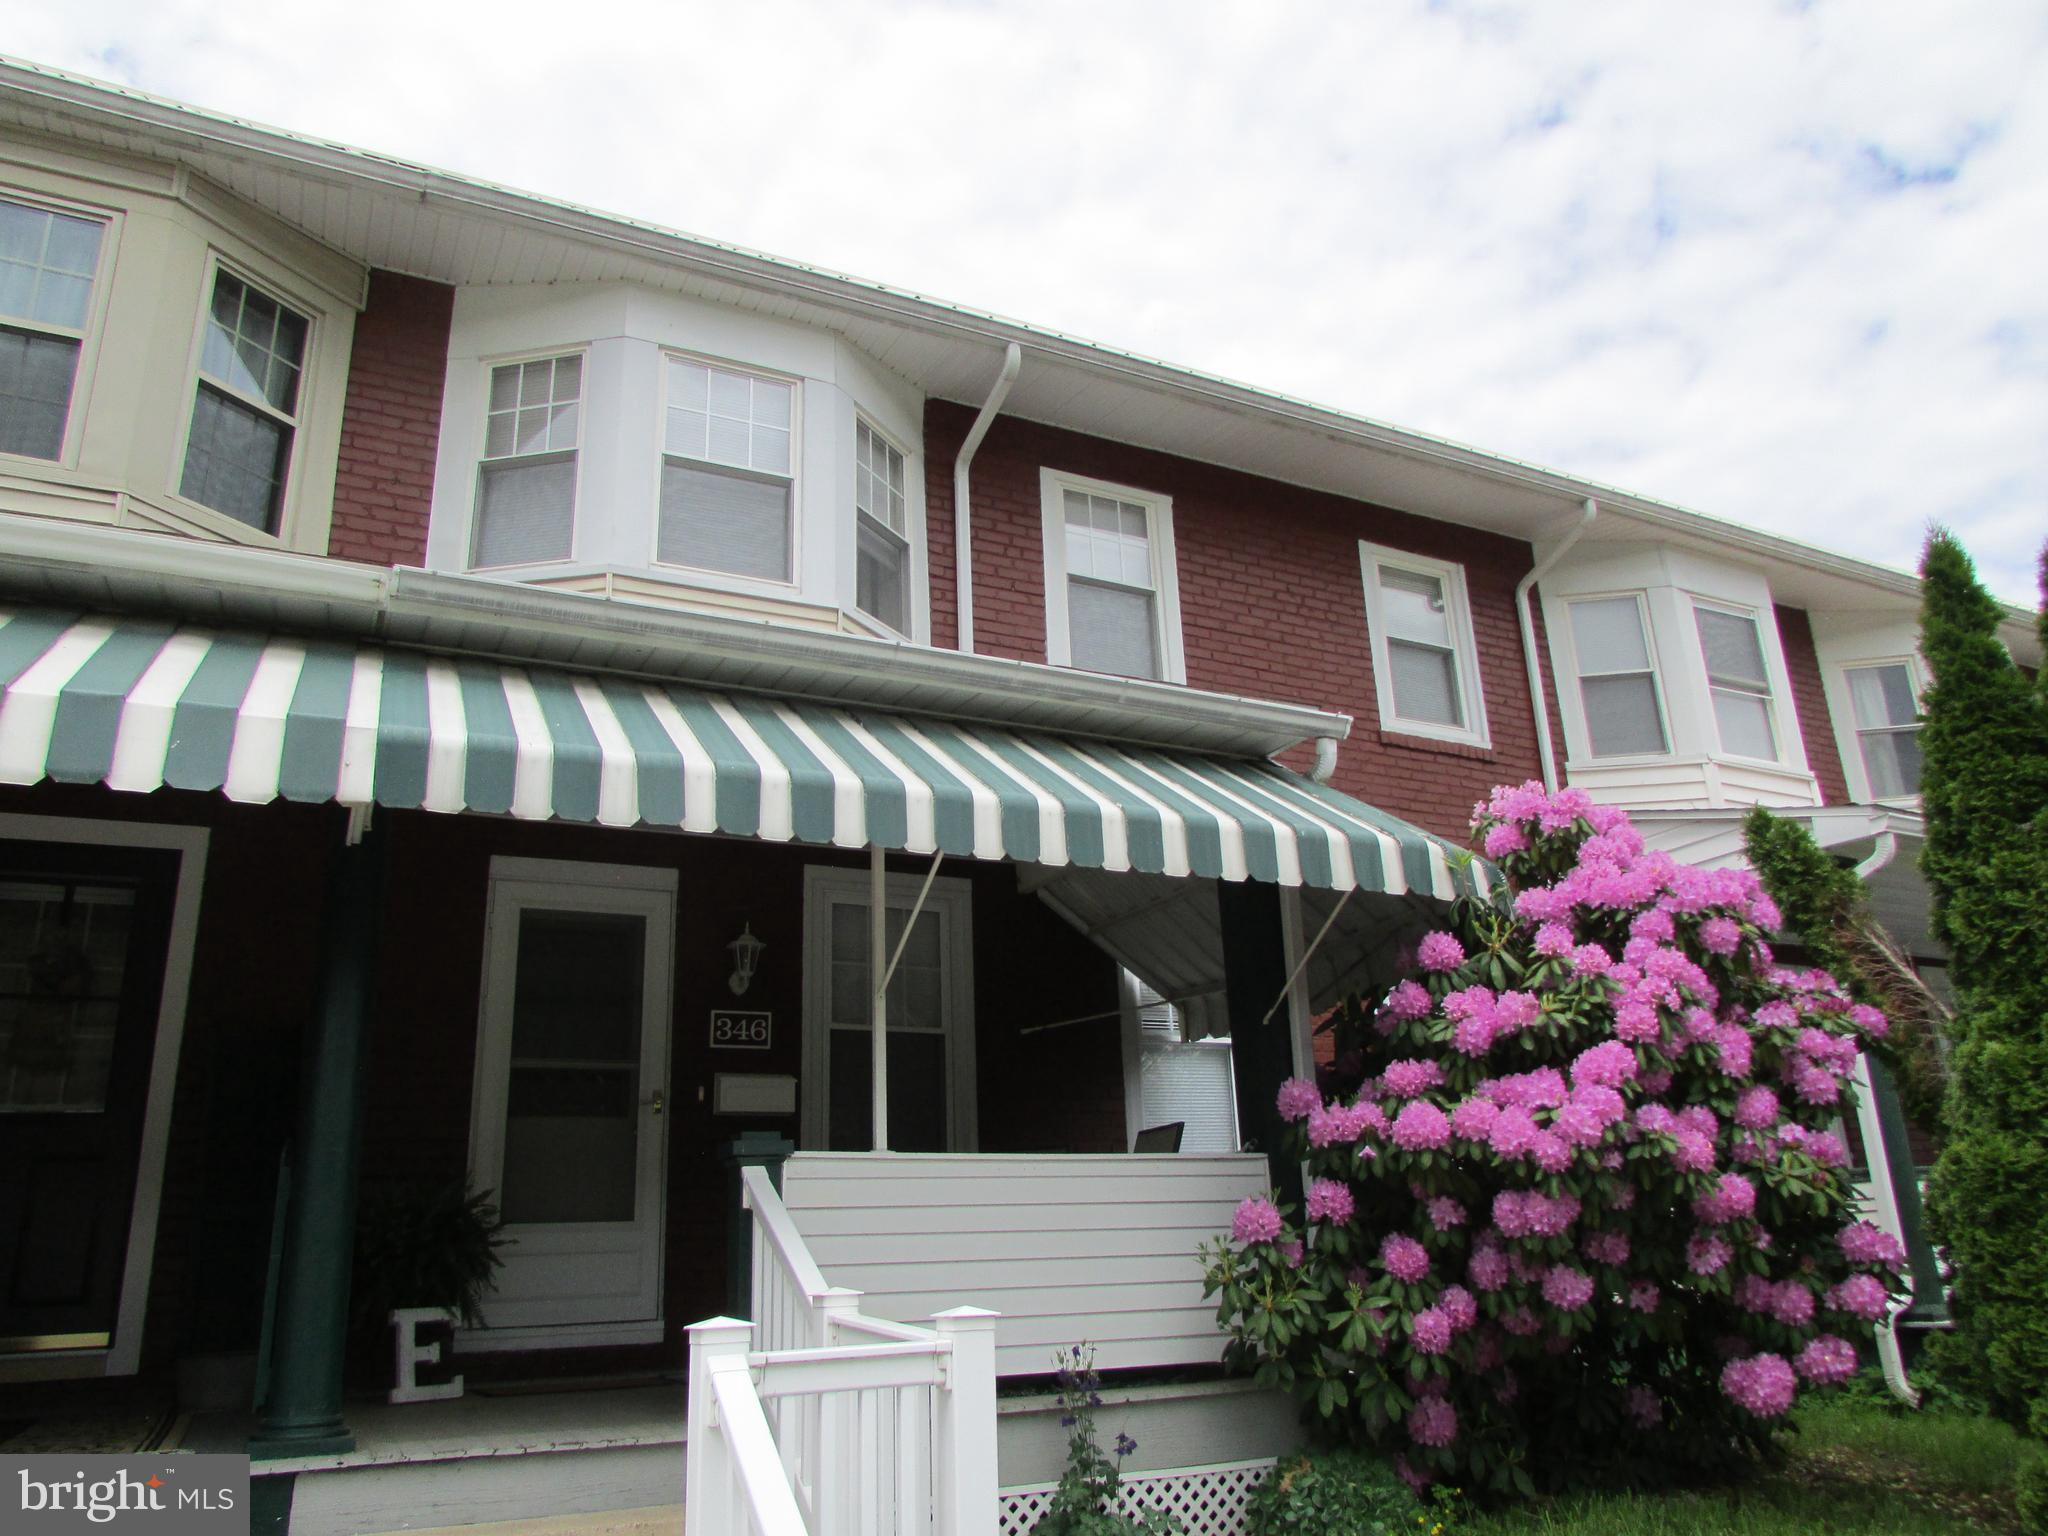 330-346 TERRACE, LEWISTOWN, PA 17044